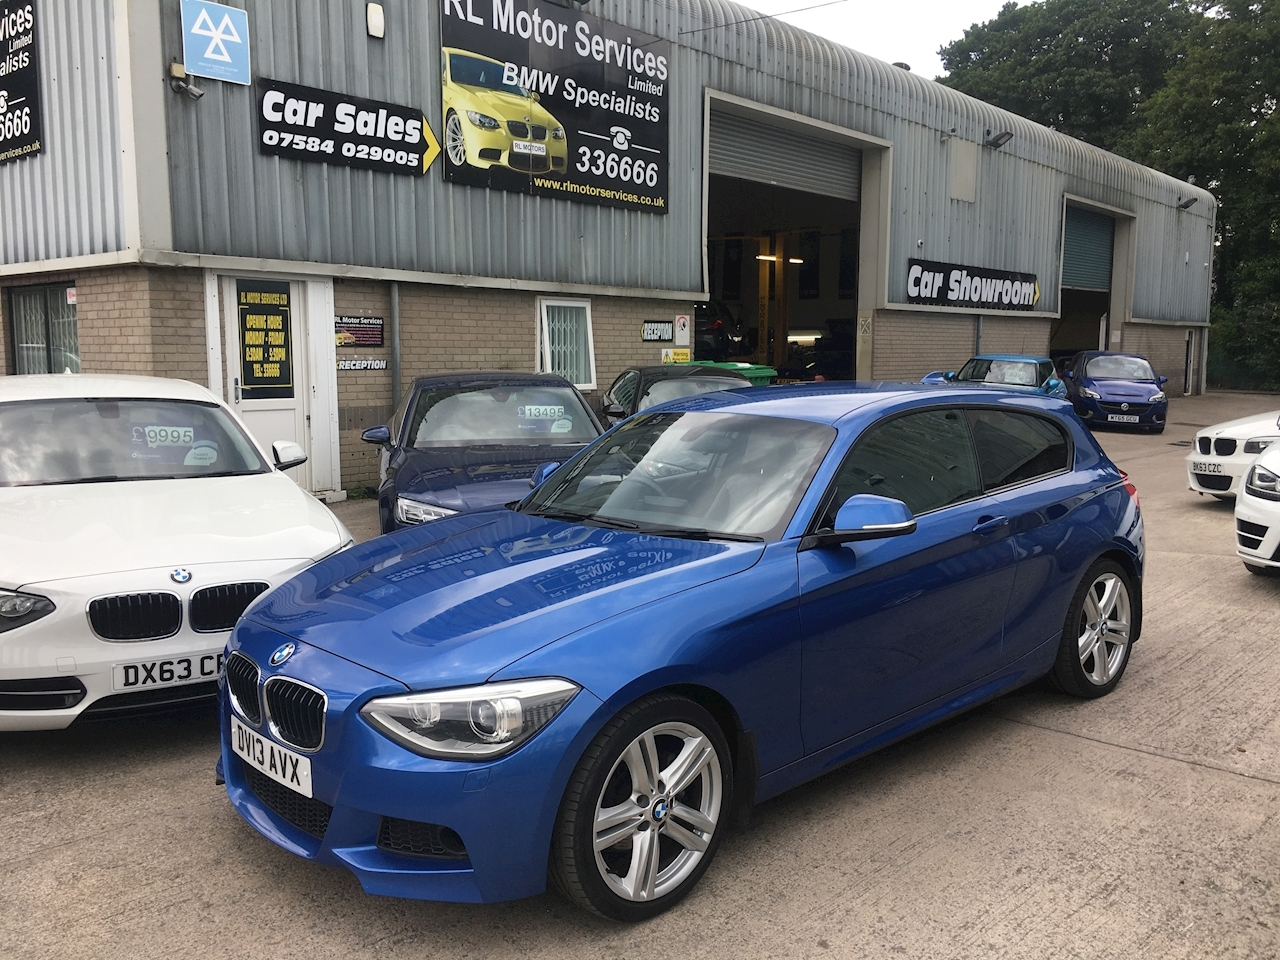 1 Series 120d M Sport 3 door 3 Door Sports Hatch 2.0 Manual Diesel